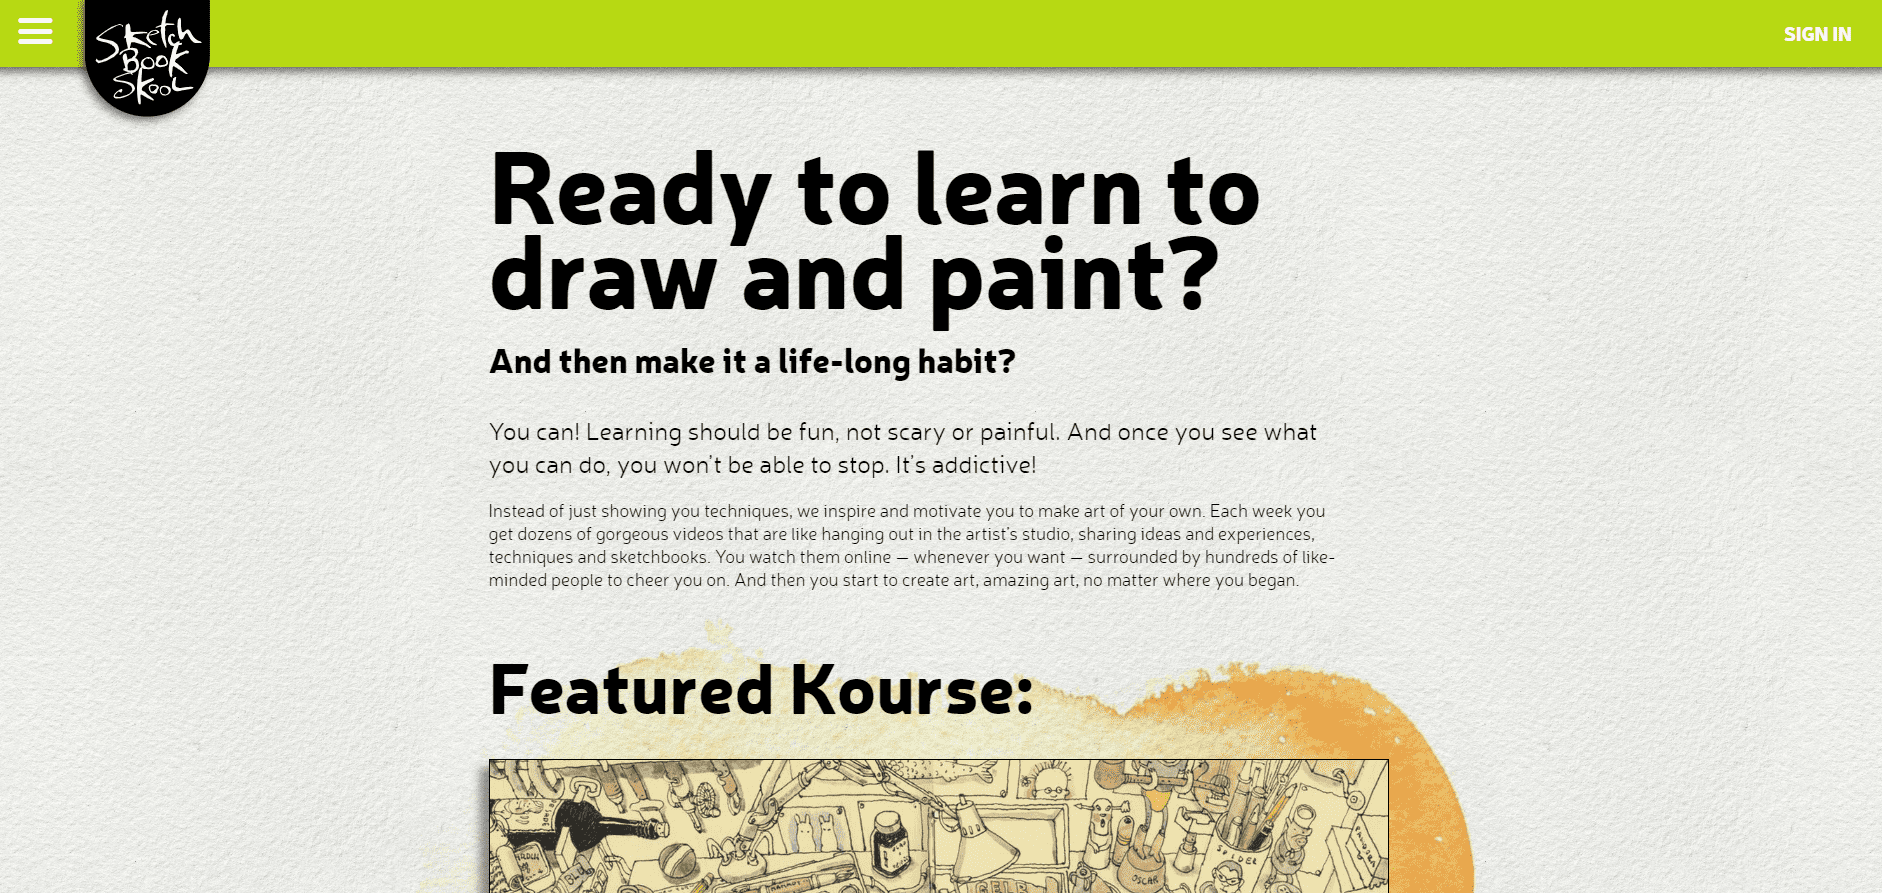 How to Become an Illustrator: Skills, Courses, Jobs. 15 Steps of Ultimate Career Guide - image46